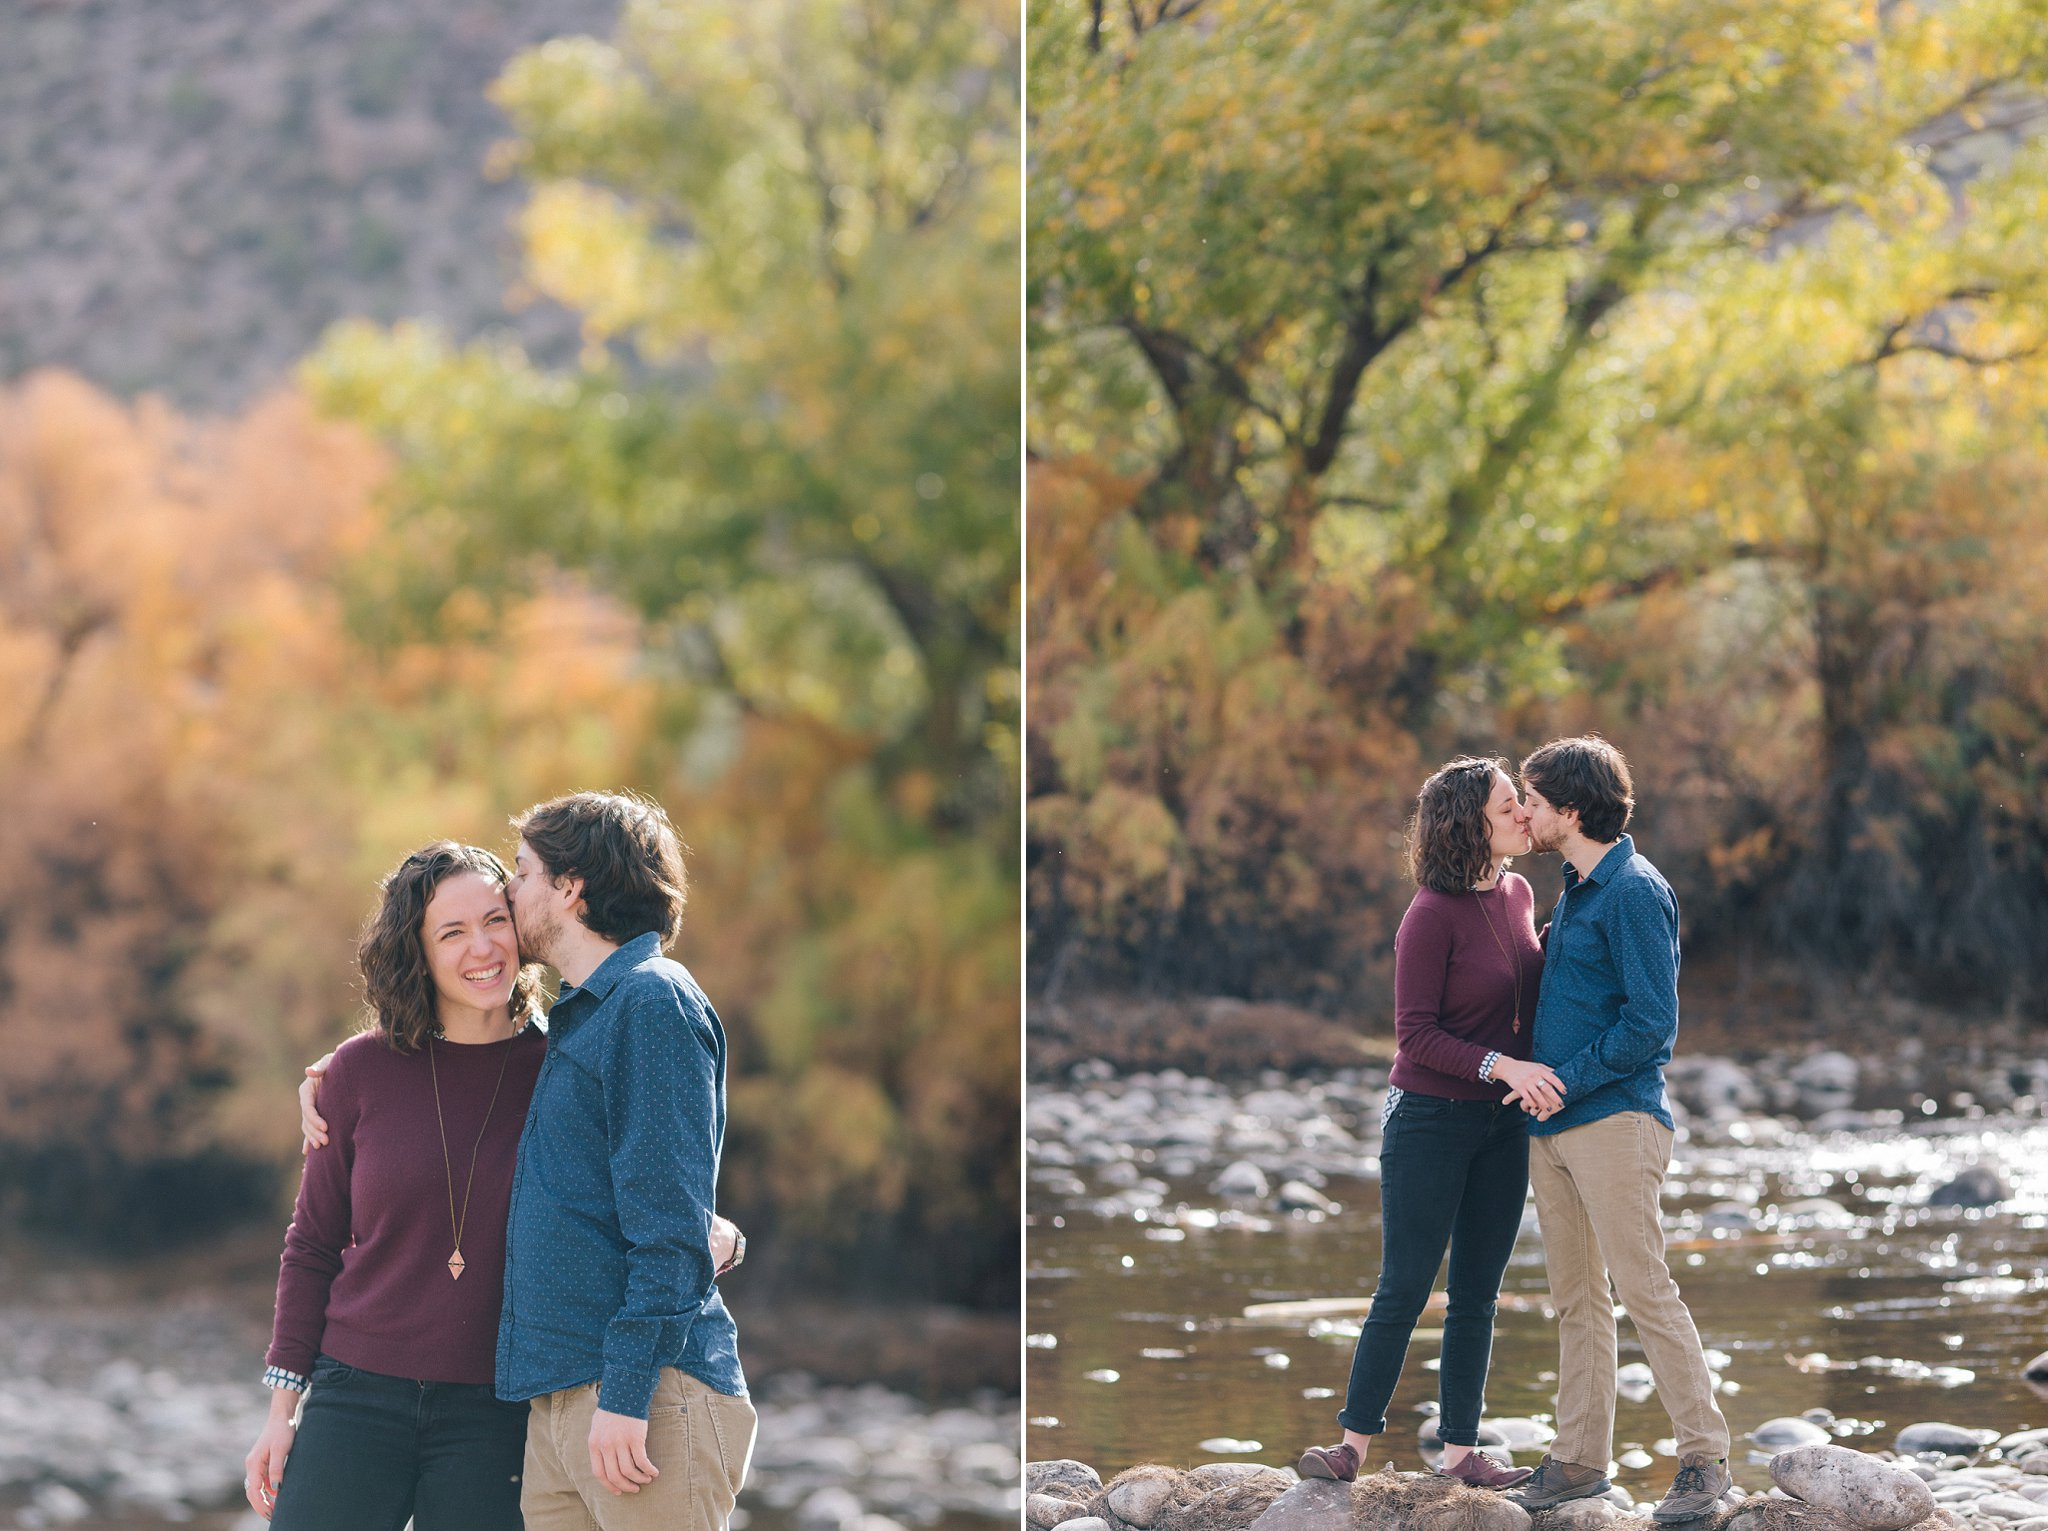 scenic outdoor river engagement session in Arizona